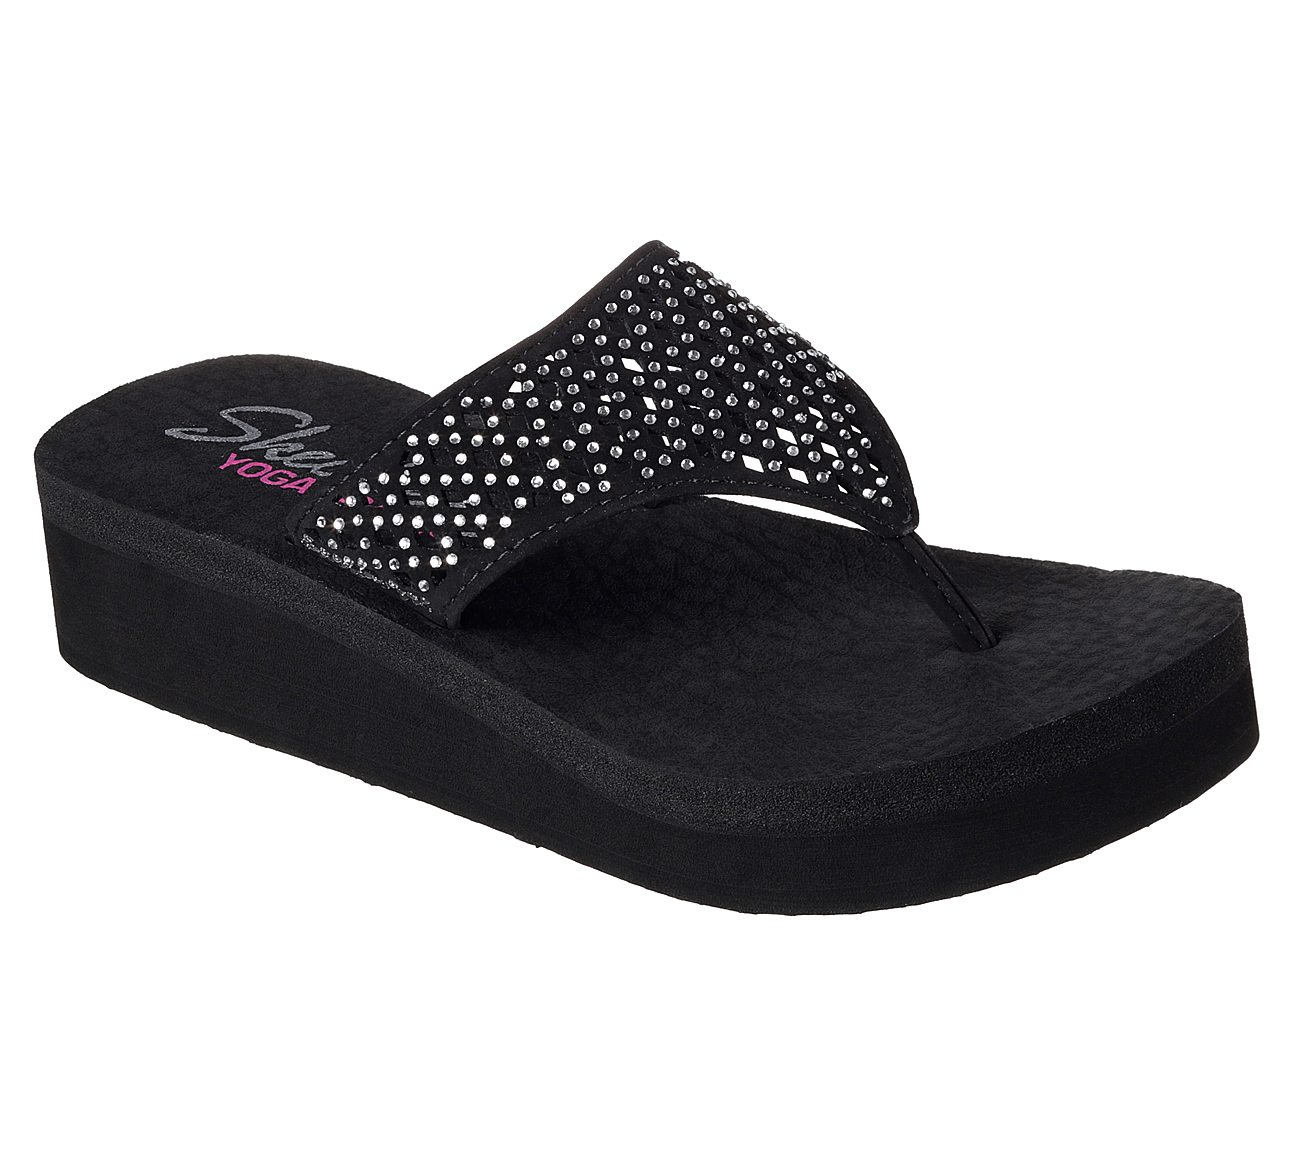 843f6fee8d30e7 skechers ladies sandals sale   OFF54% Discounted